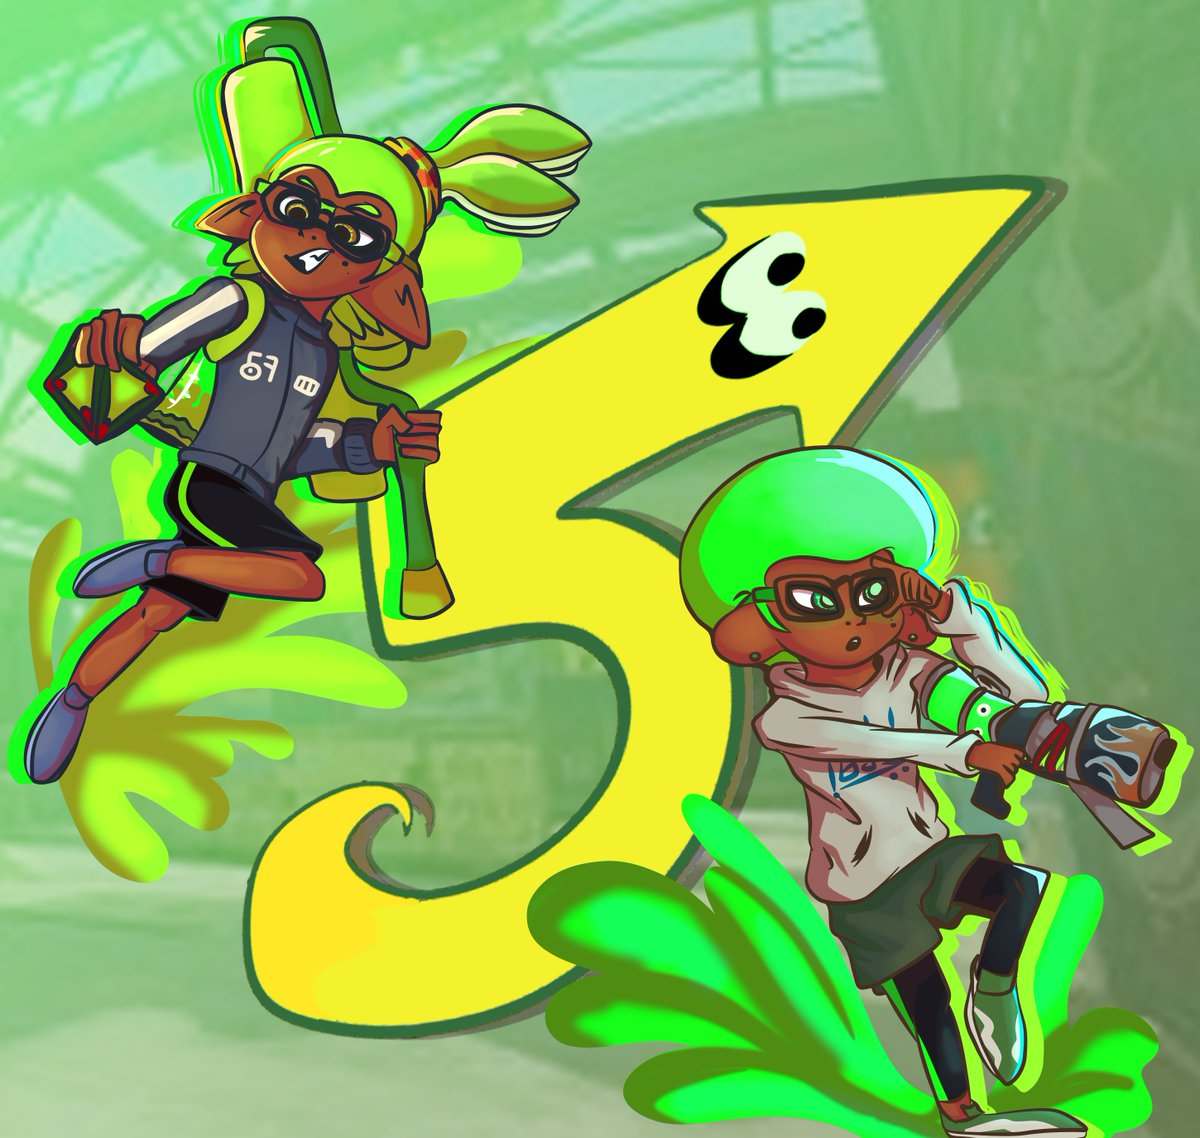 It's finally the day! Happy five years #Splatoon !! This game inspired many and upcoming people to play, draw, and even write! Thank you for these amazing five years!! And here are many more years to come! #SplatArt #SplatoonArt #DigitalArt